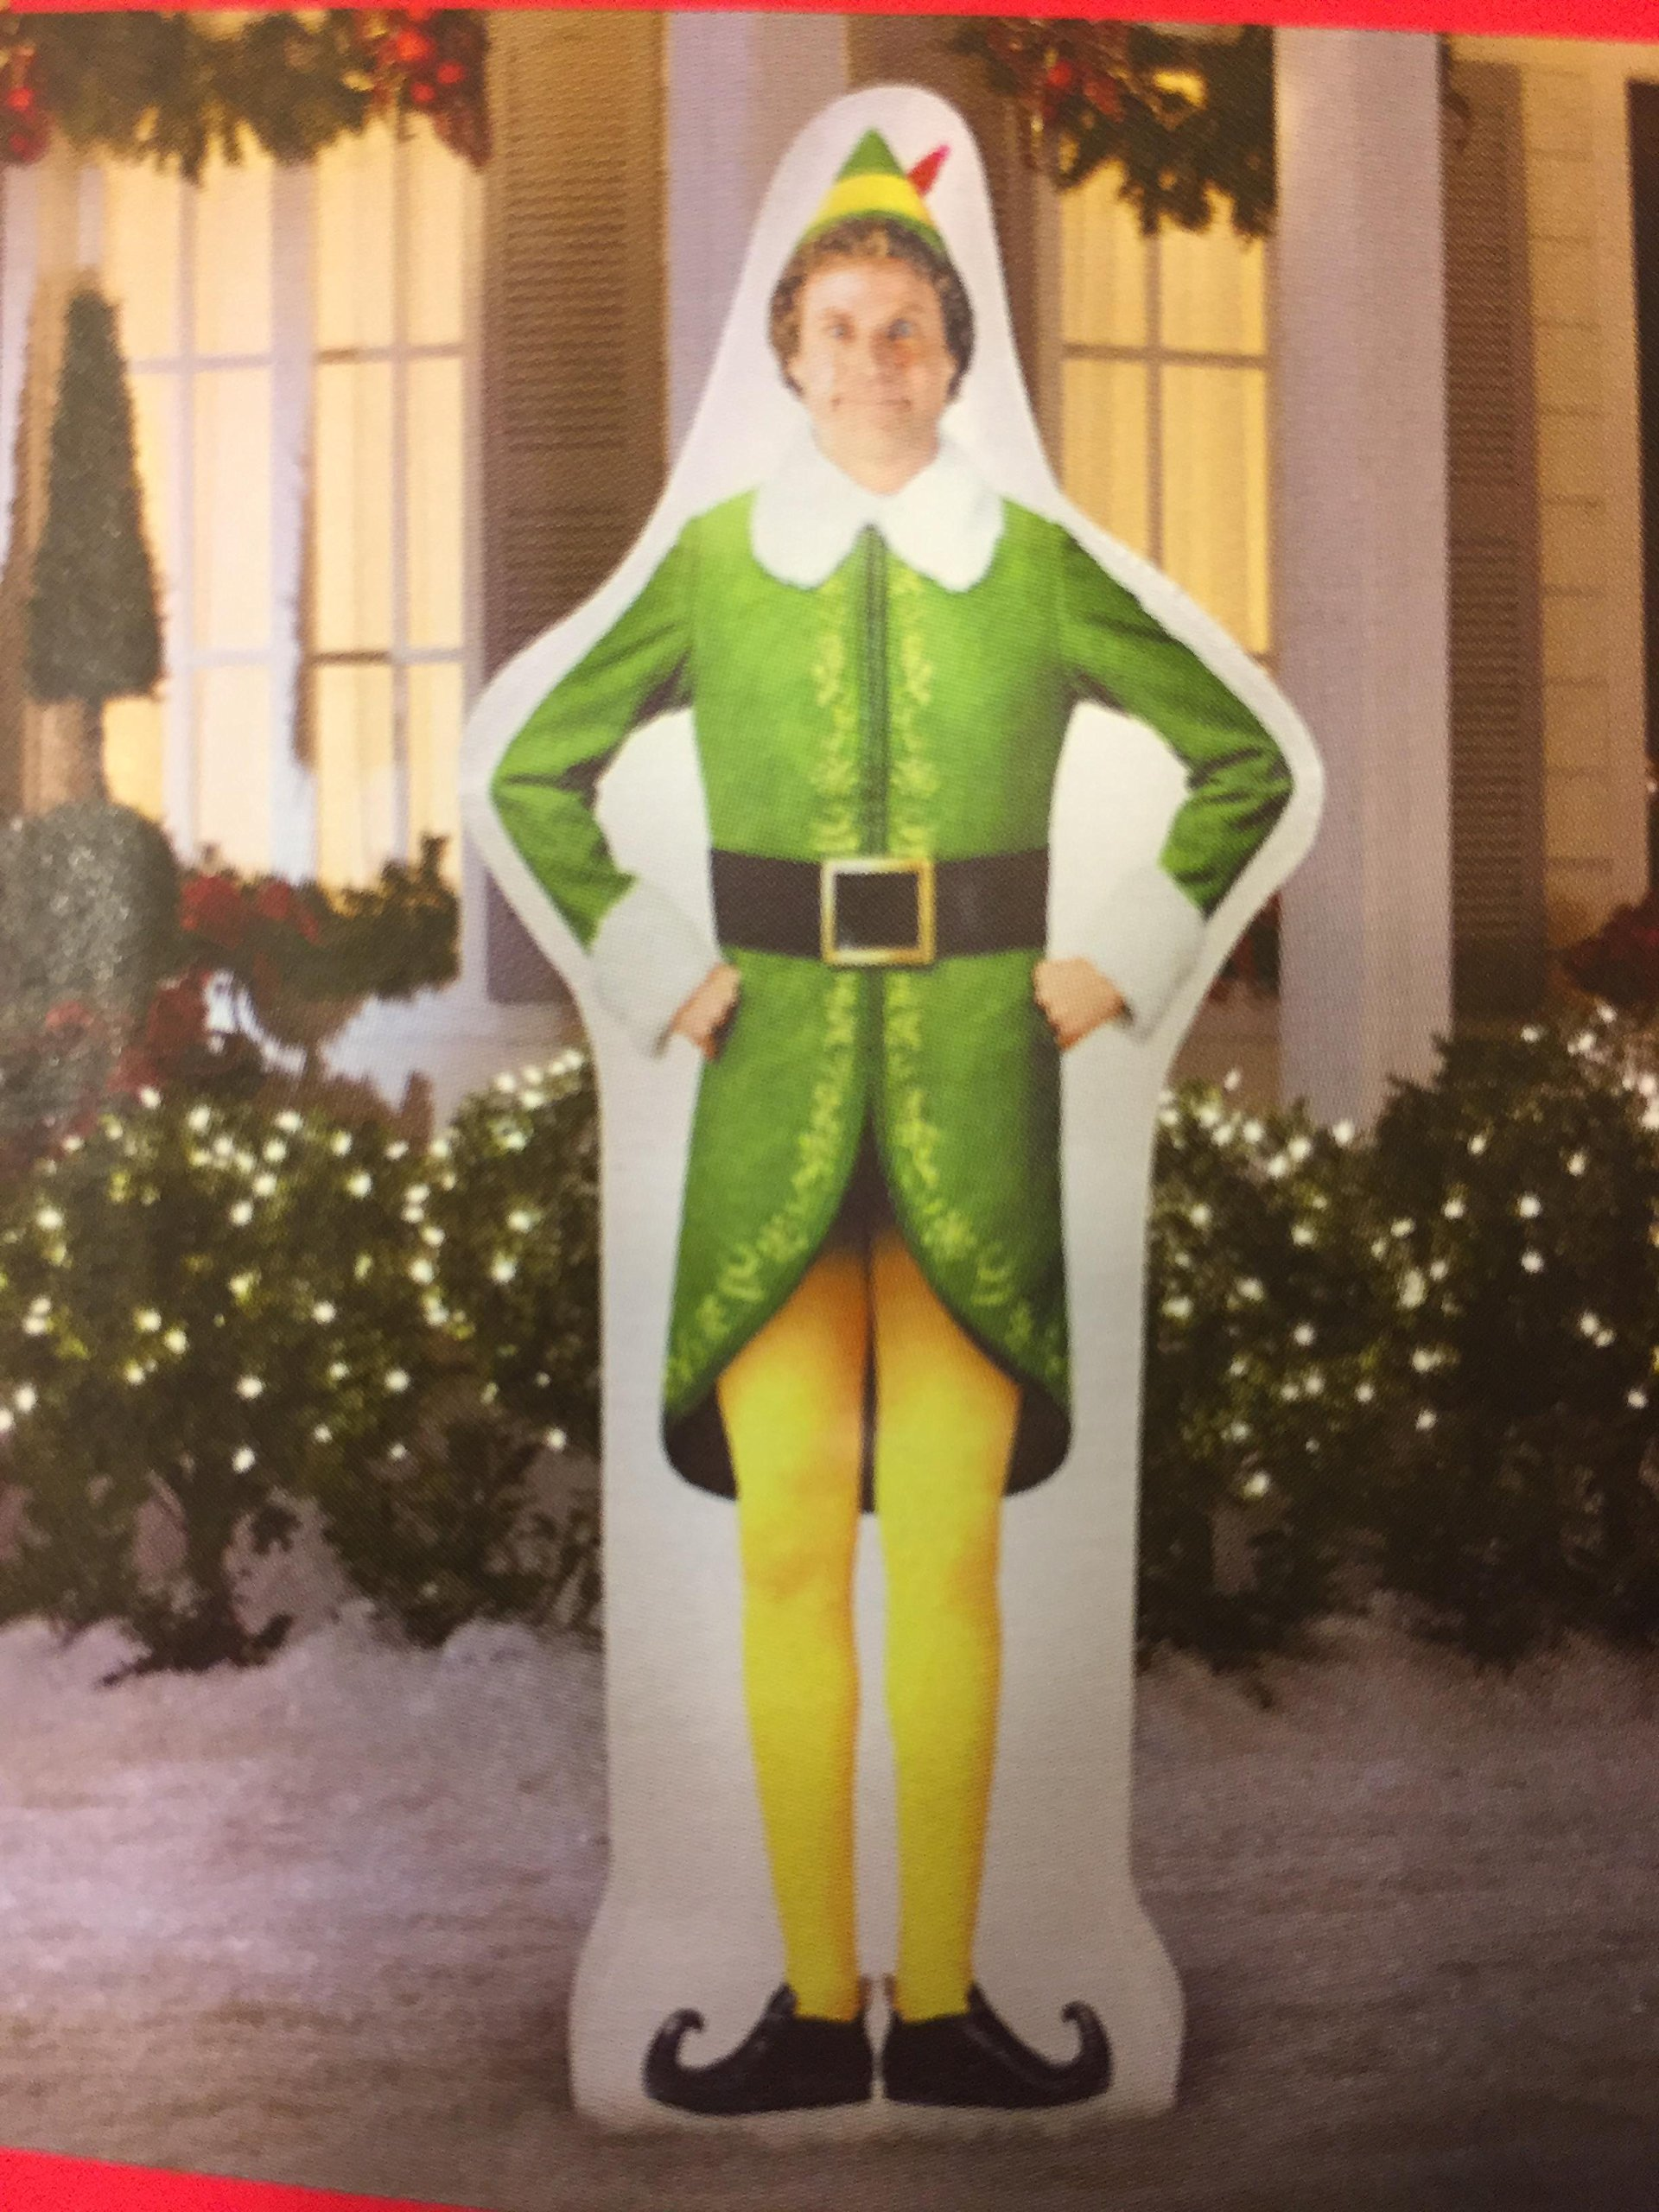 6 ft Elf Buddy lighted inflatable outdoor holiday yard art by